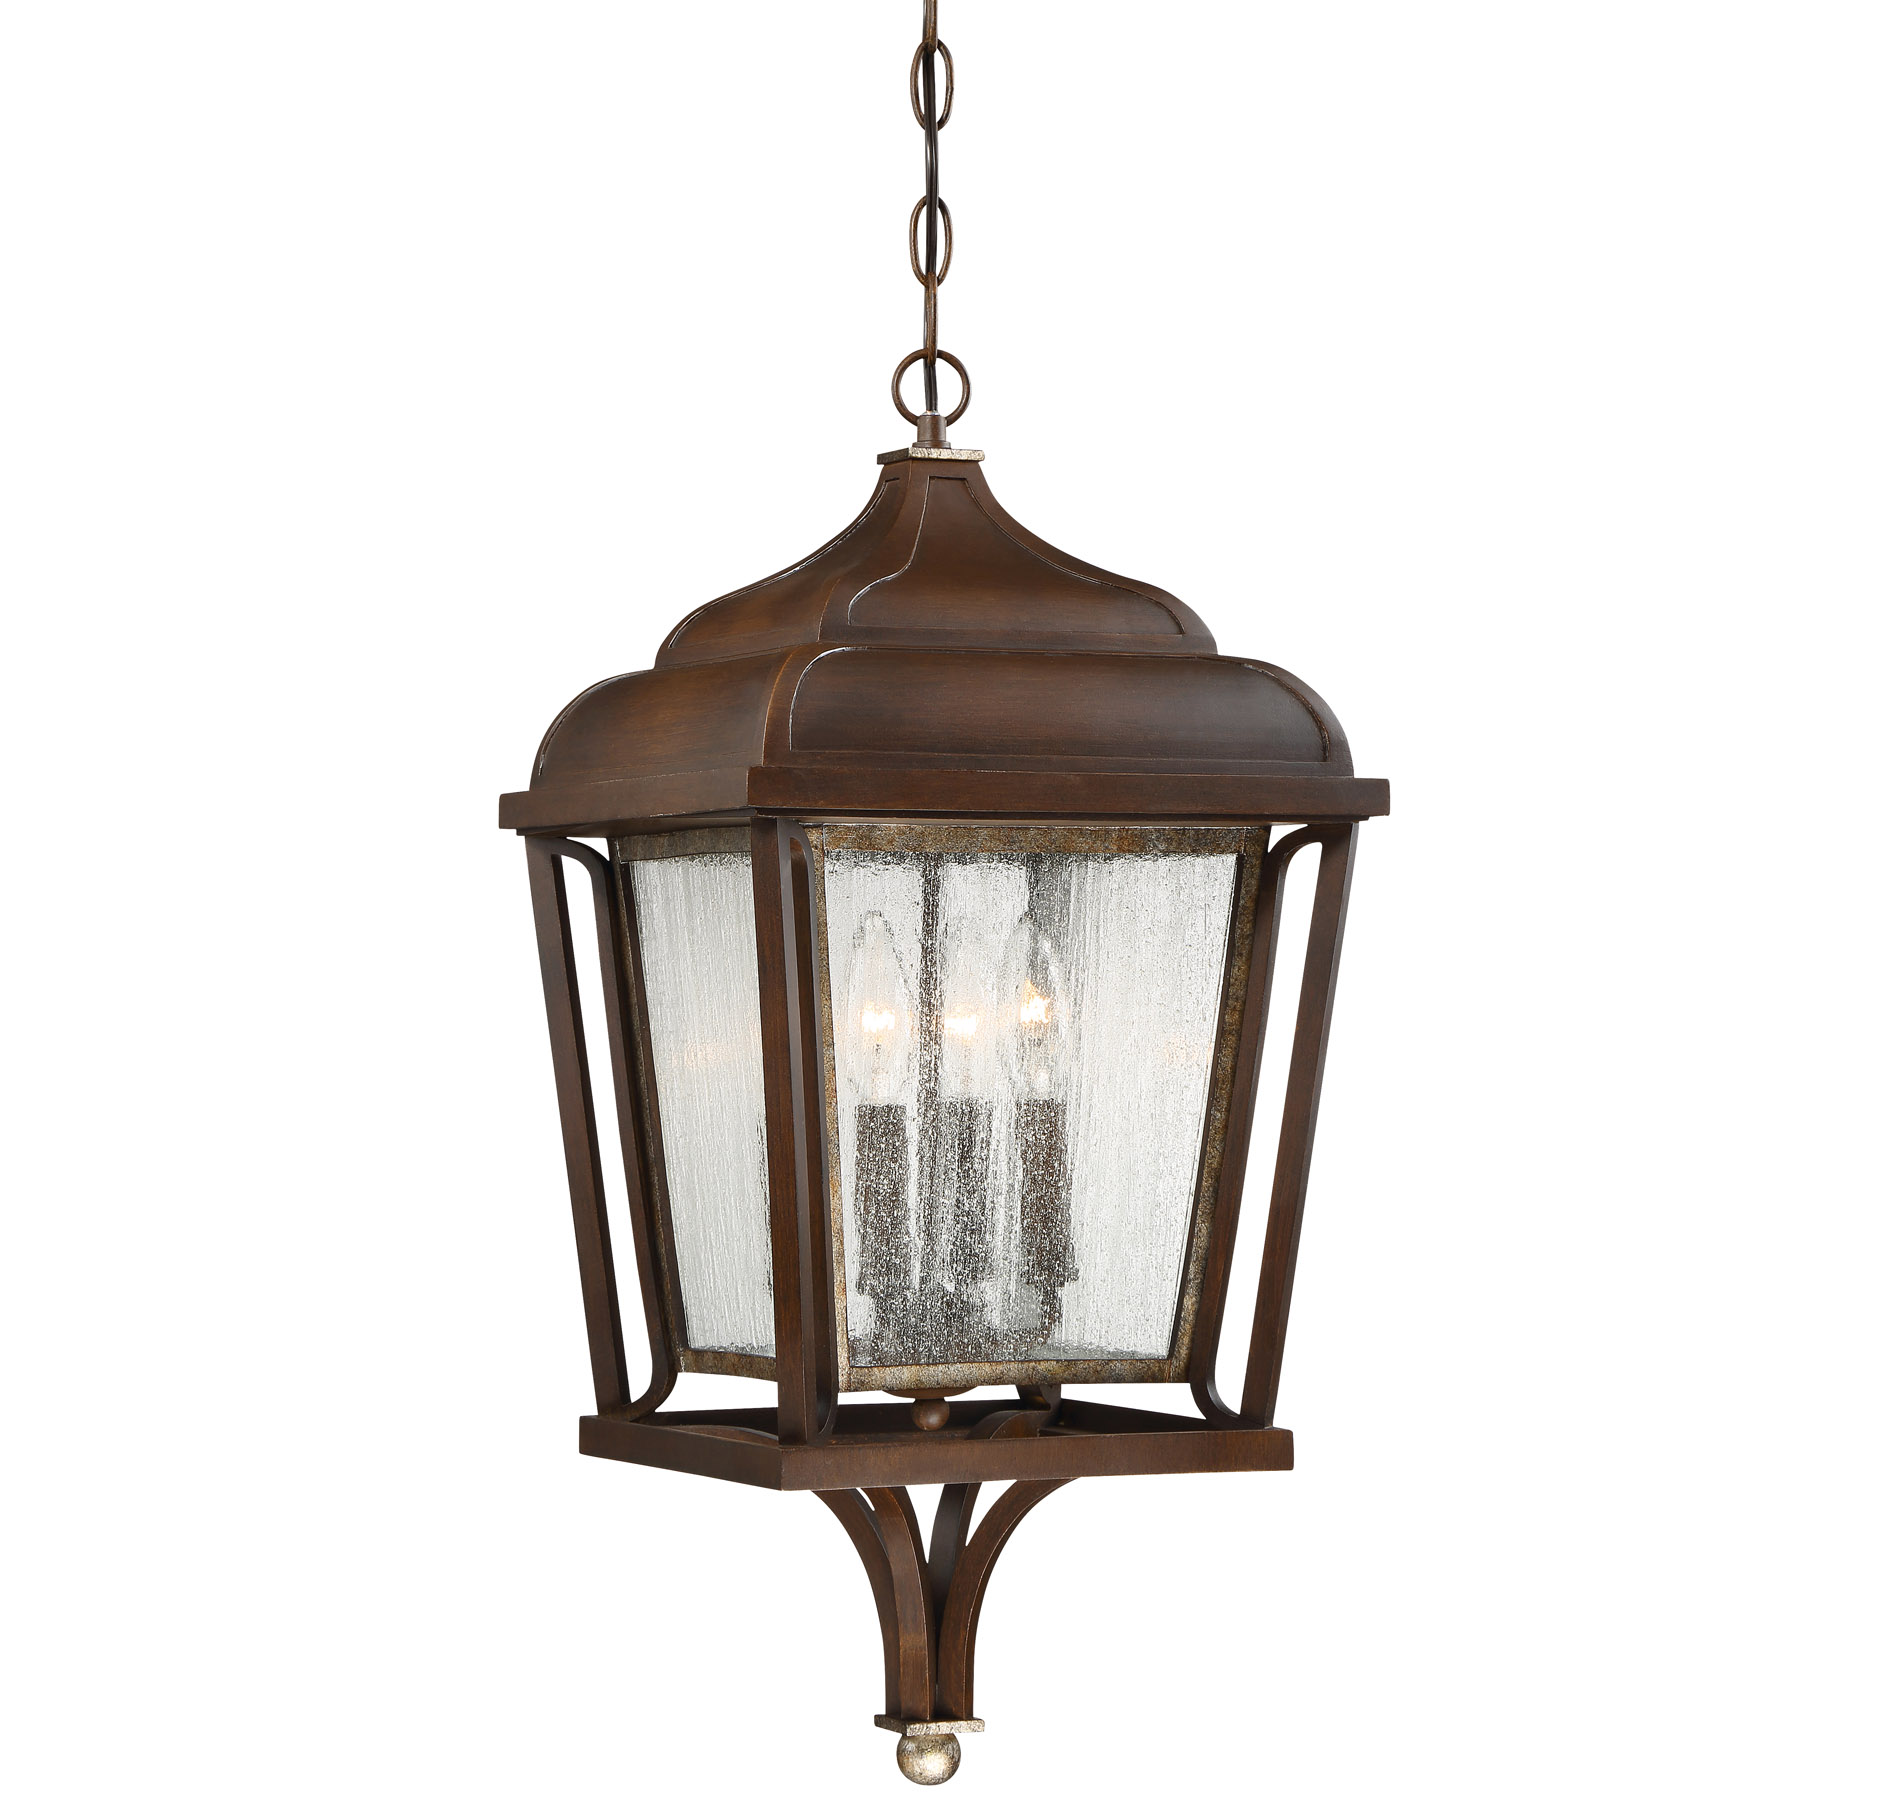 Outdoor Hanging Lamps Minka Lavery Astrapia 4 Light 72544 593 Outdoor Hanging Light